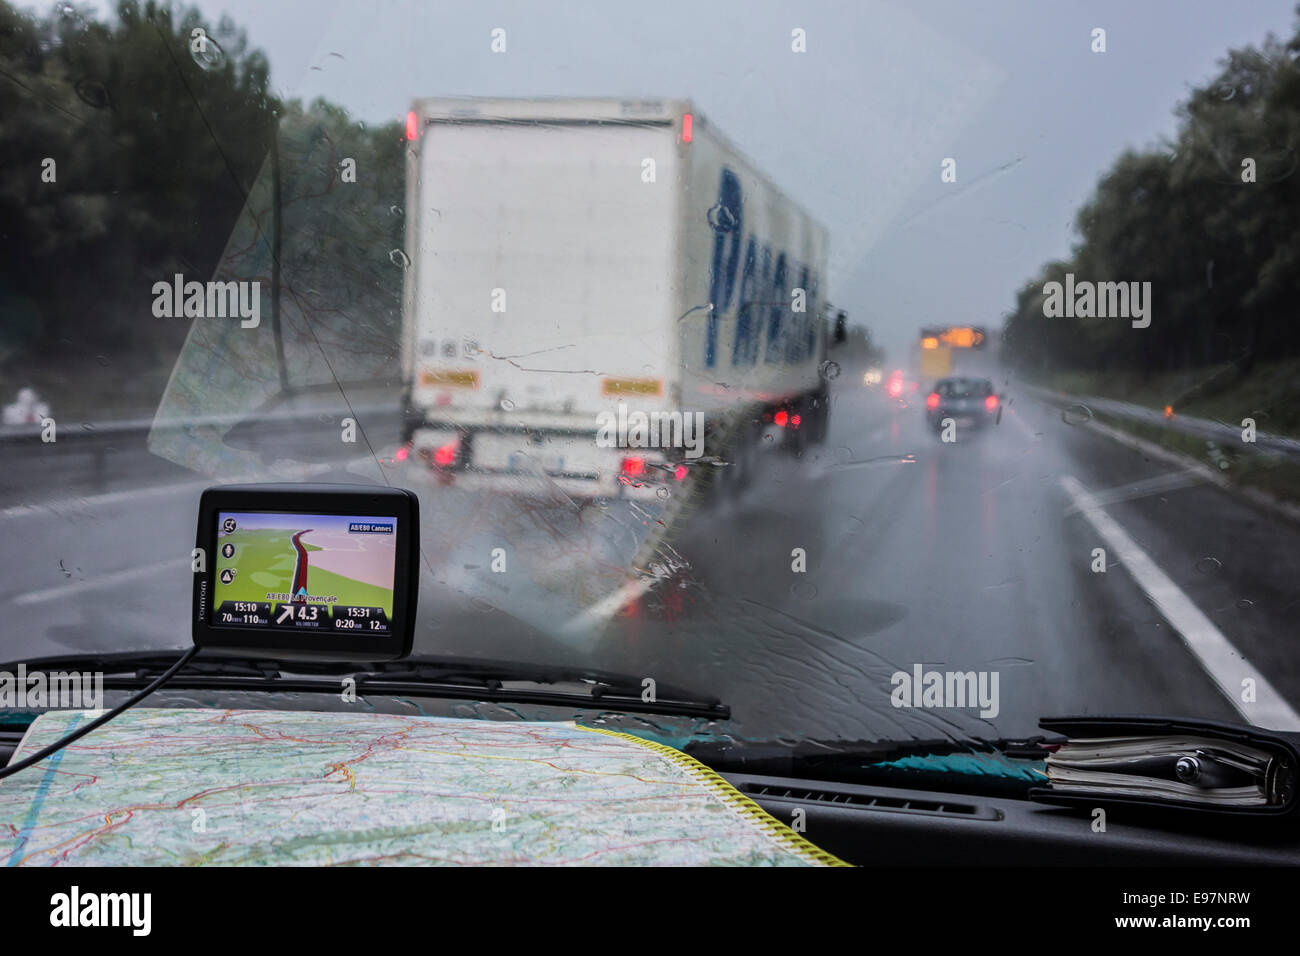 Speeding truck overtaking cars on highway during heavy rain shower seen from inside of car with GPS and road map - Stock Image